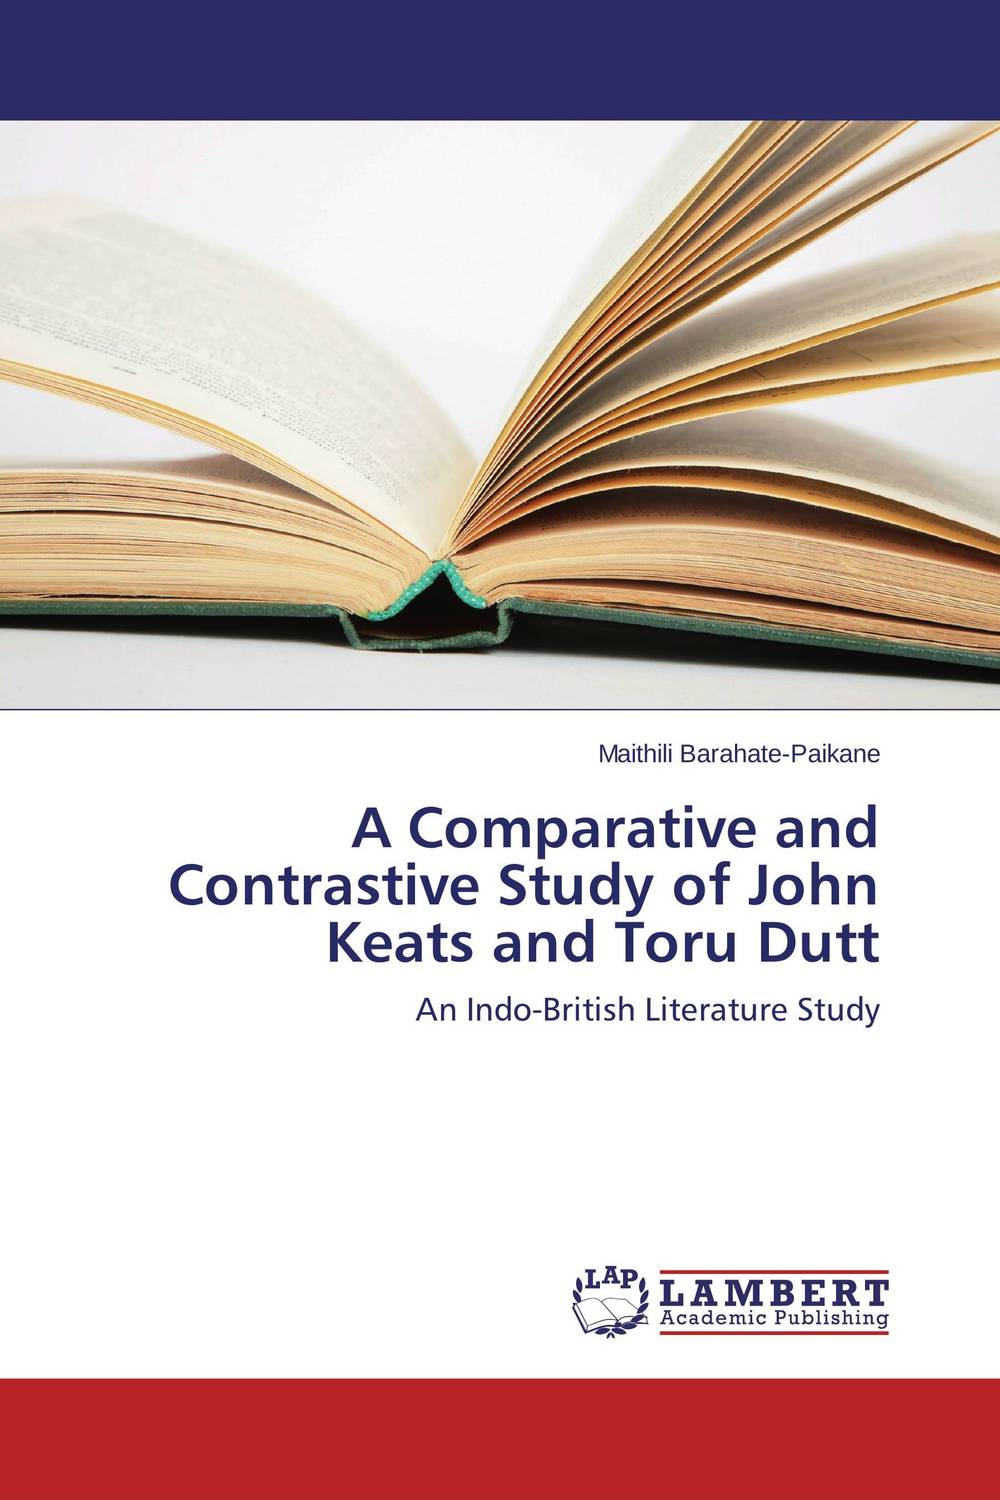 A Comparative and Contrastive Study of John Keats and Toru Dutt ghanaian and nigerian english some comparative phonological features